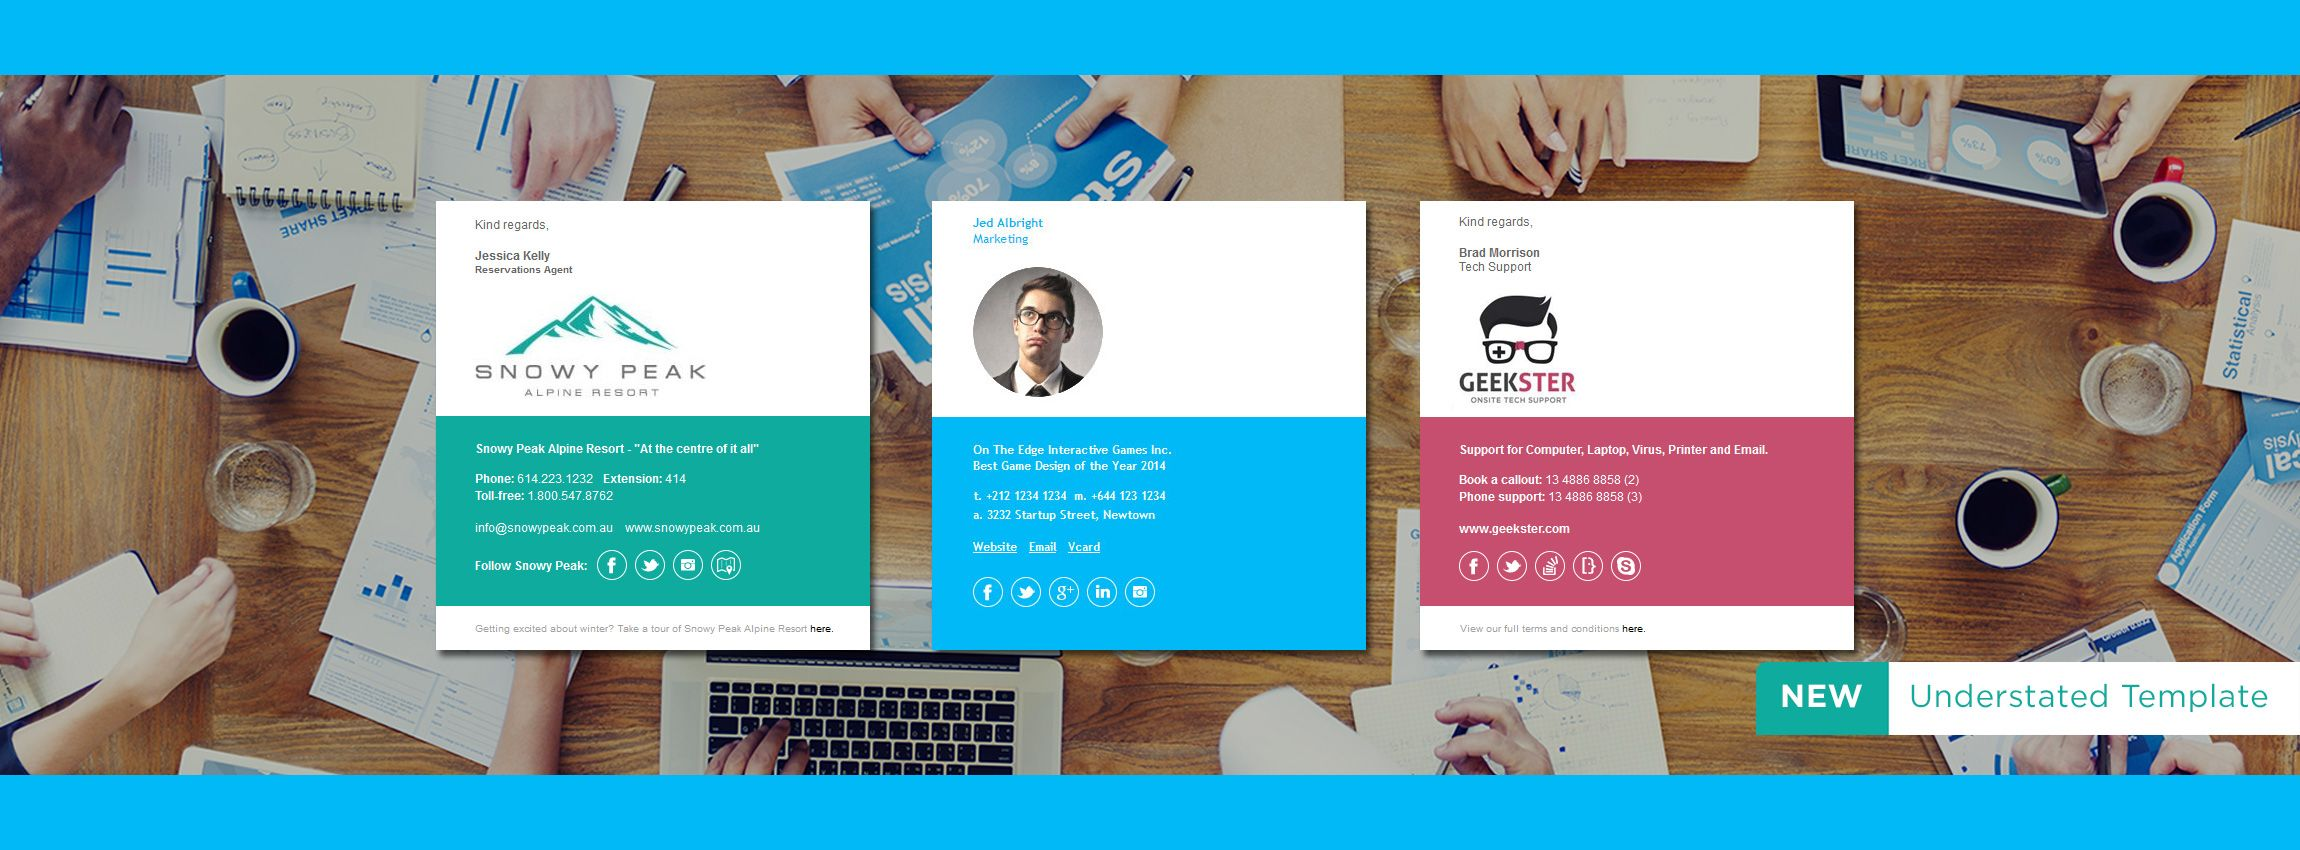 Email Signature Template Examples, just a taste of what you can ...